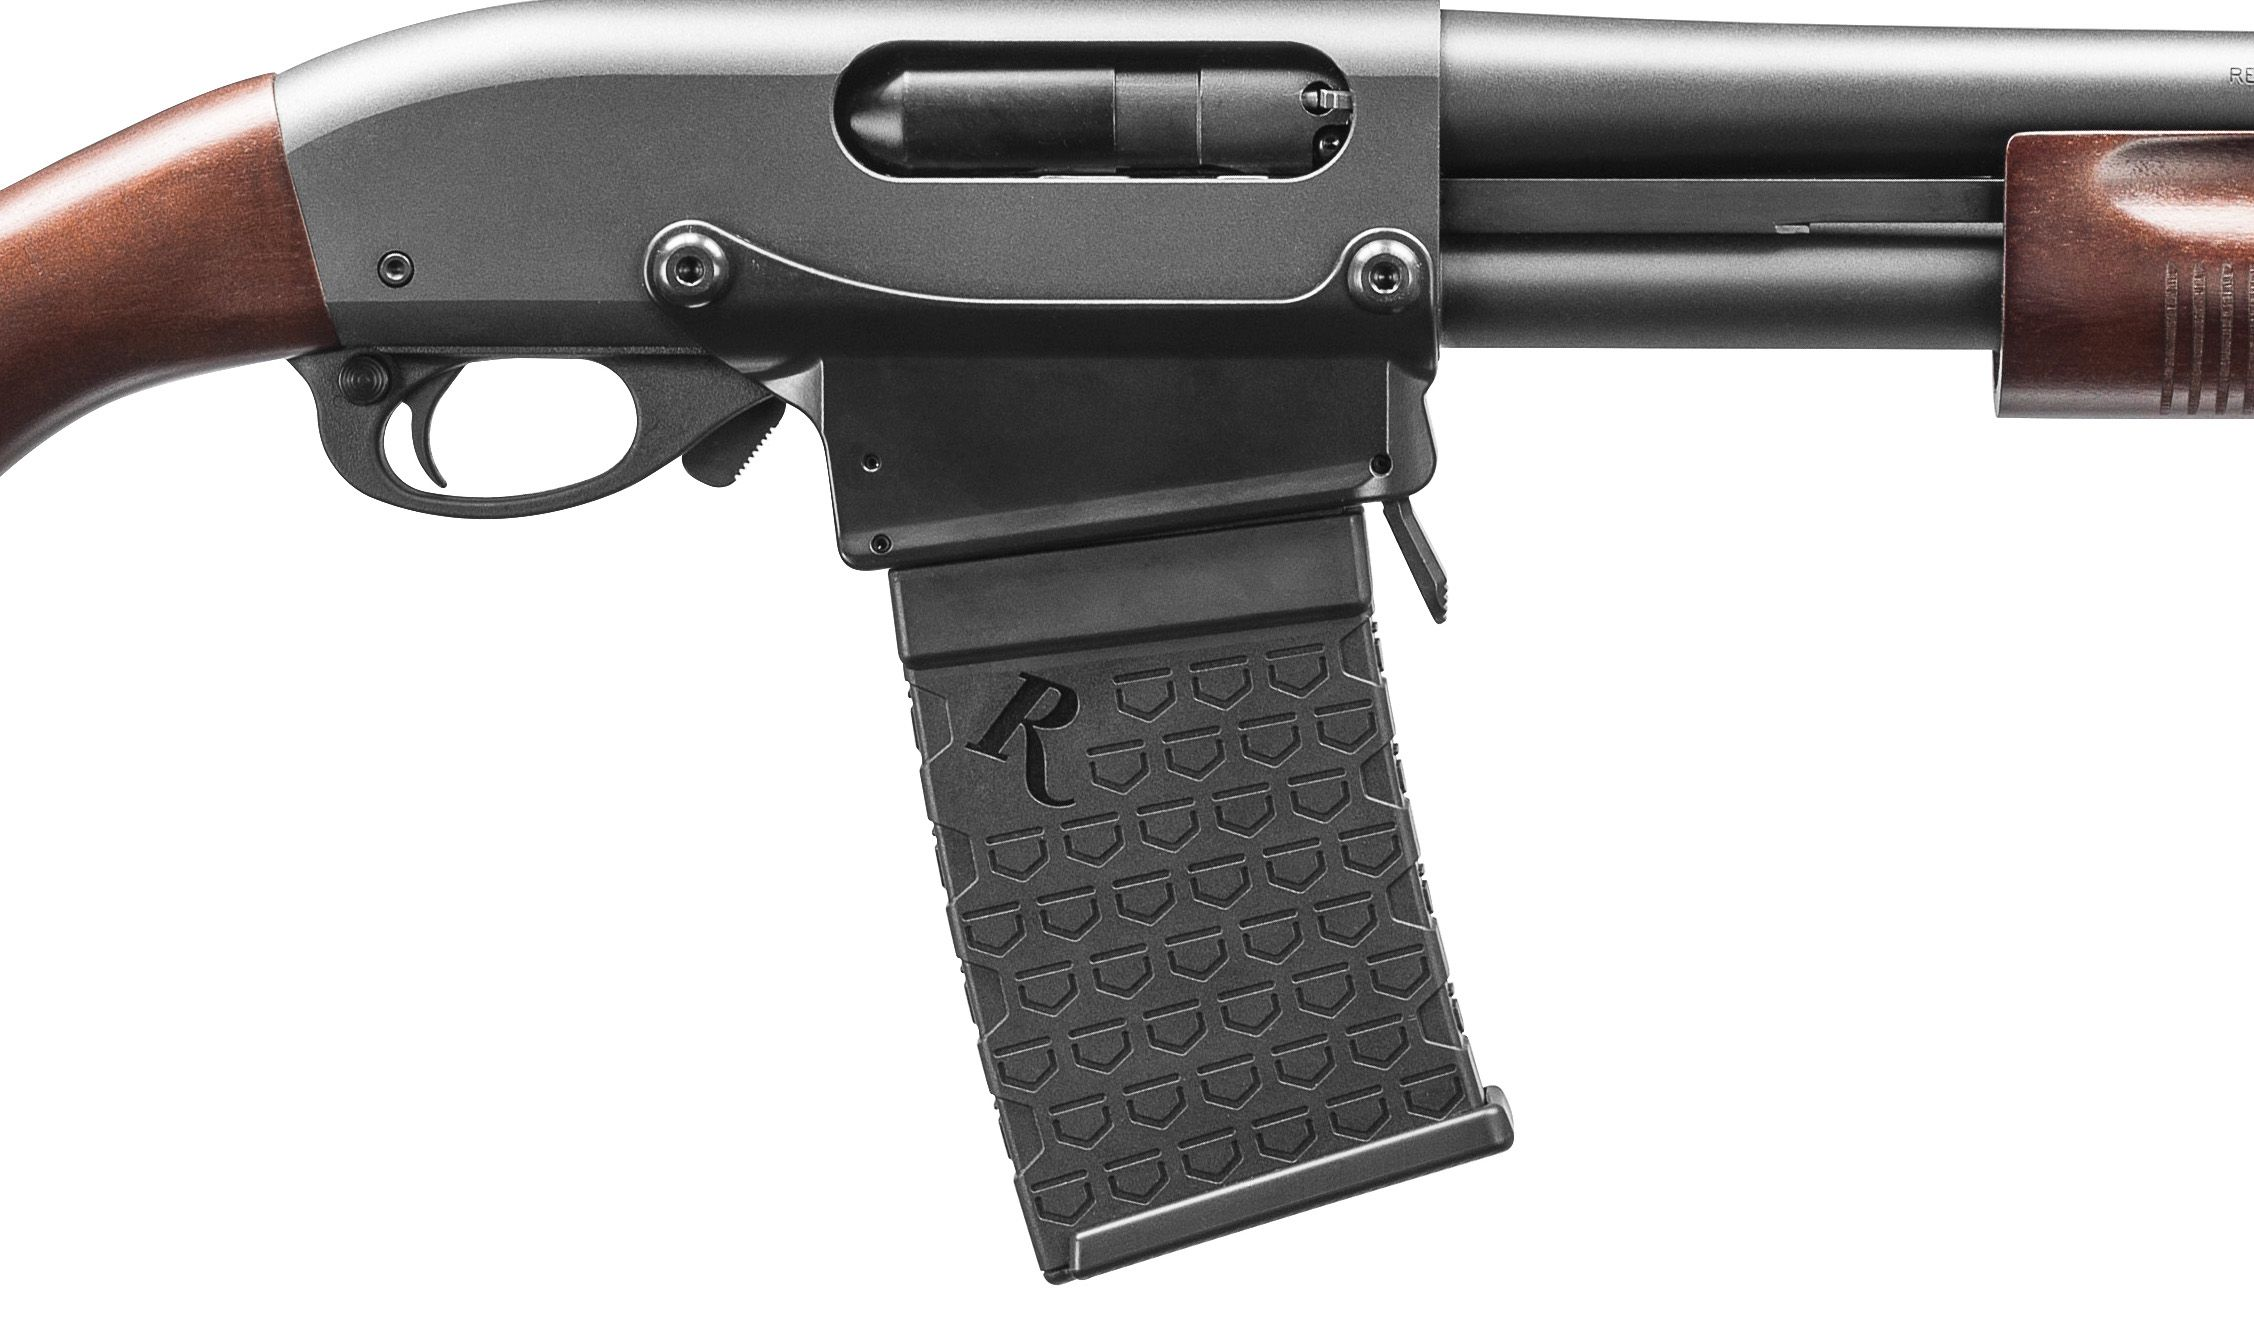 Remington Debuts 870 Shotgun with Box Magazine: Full Review